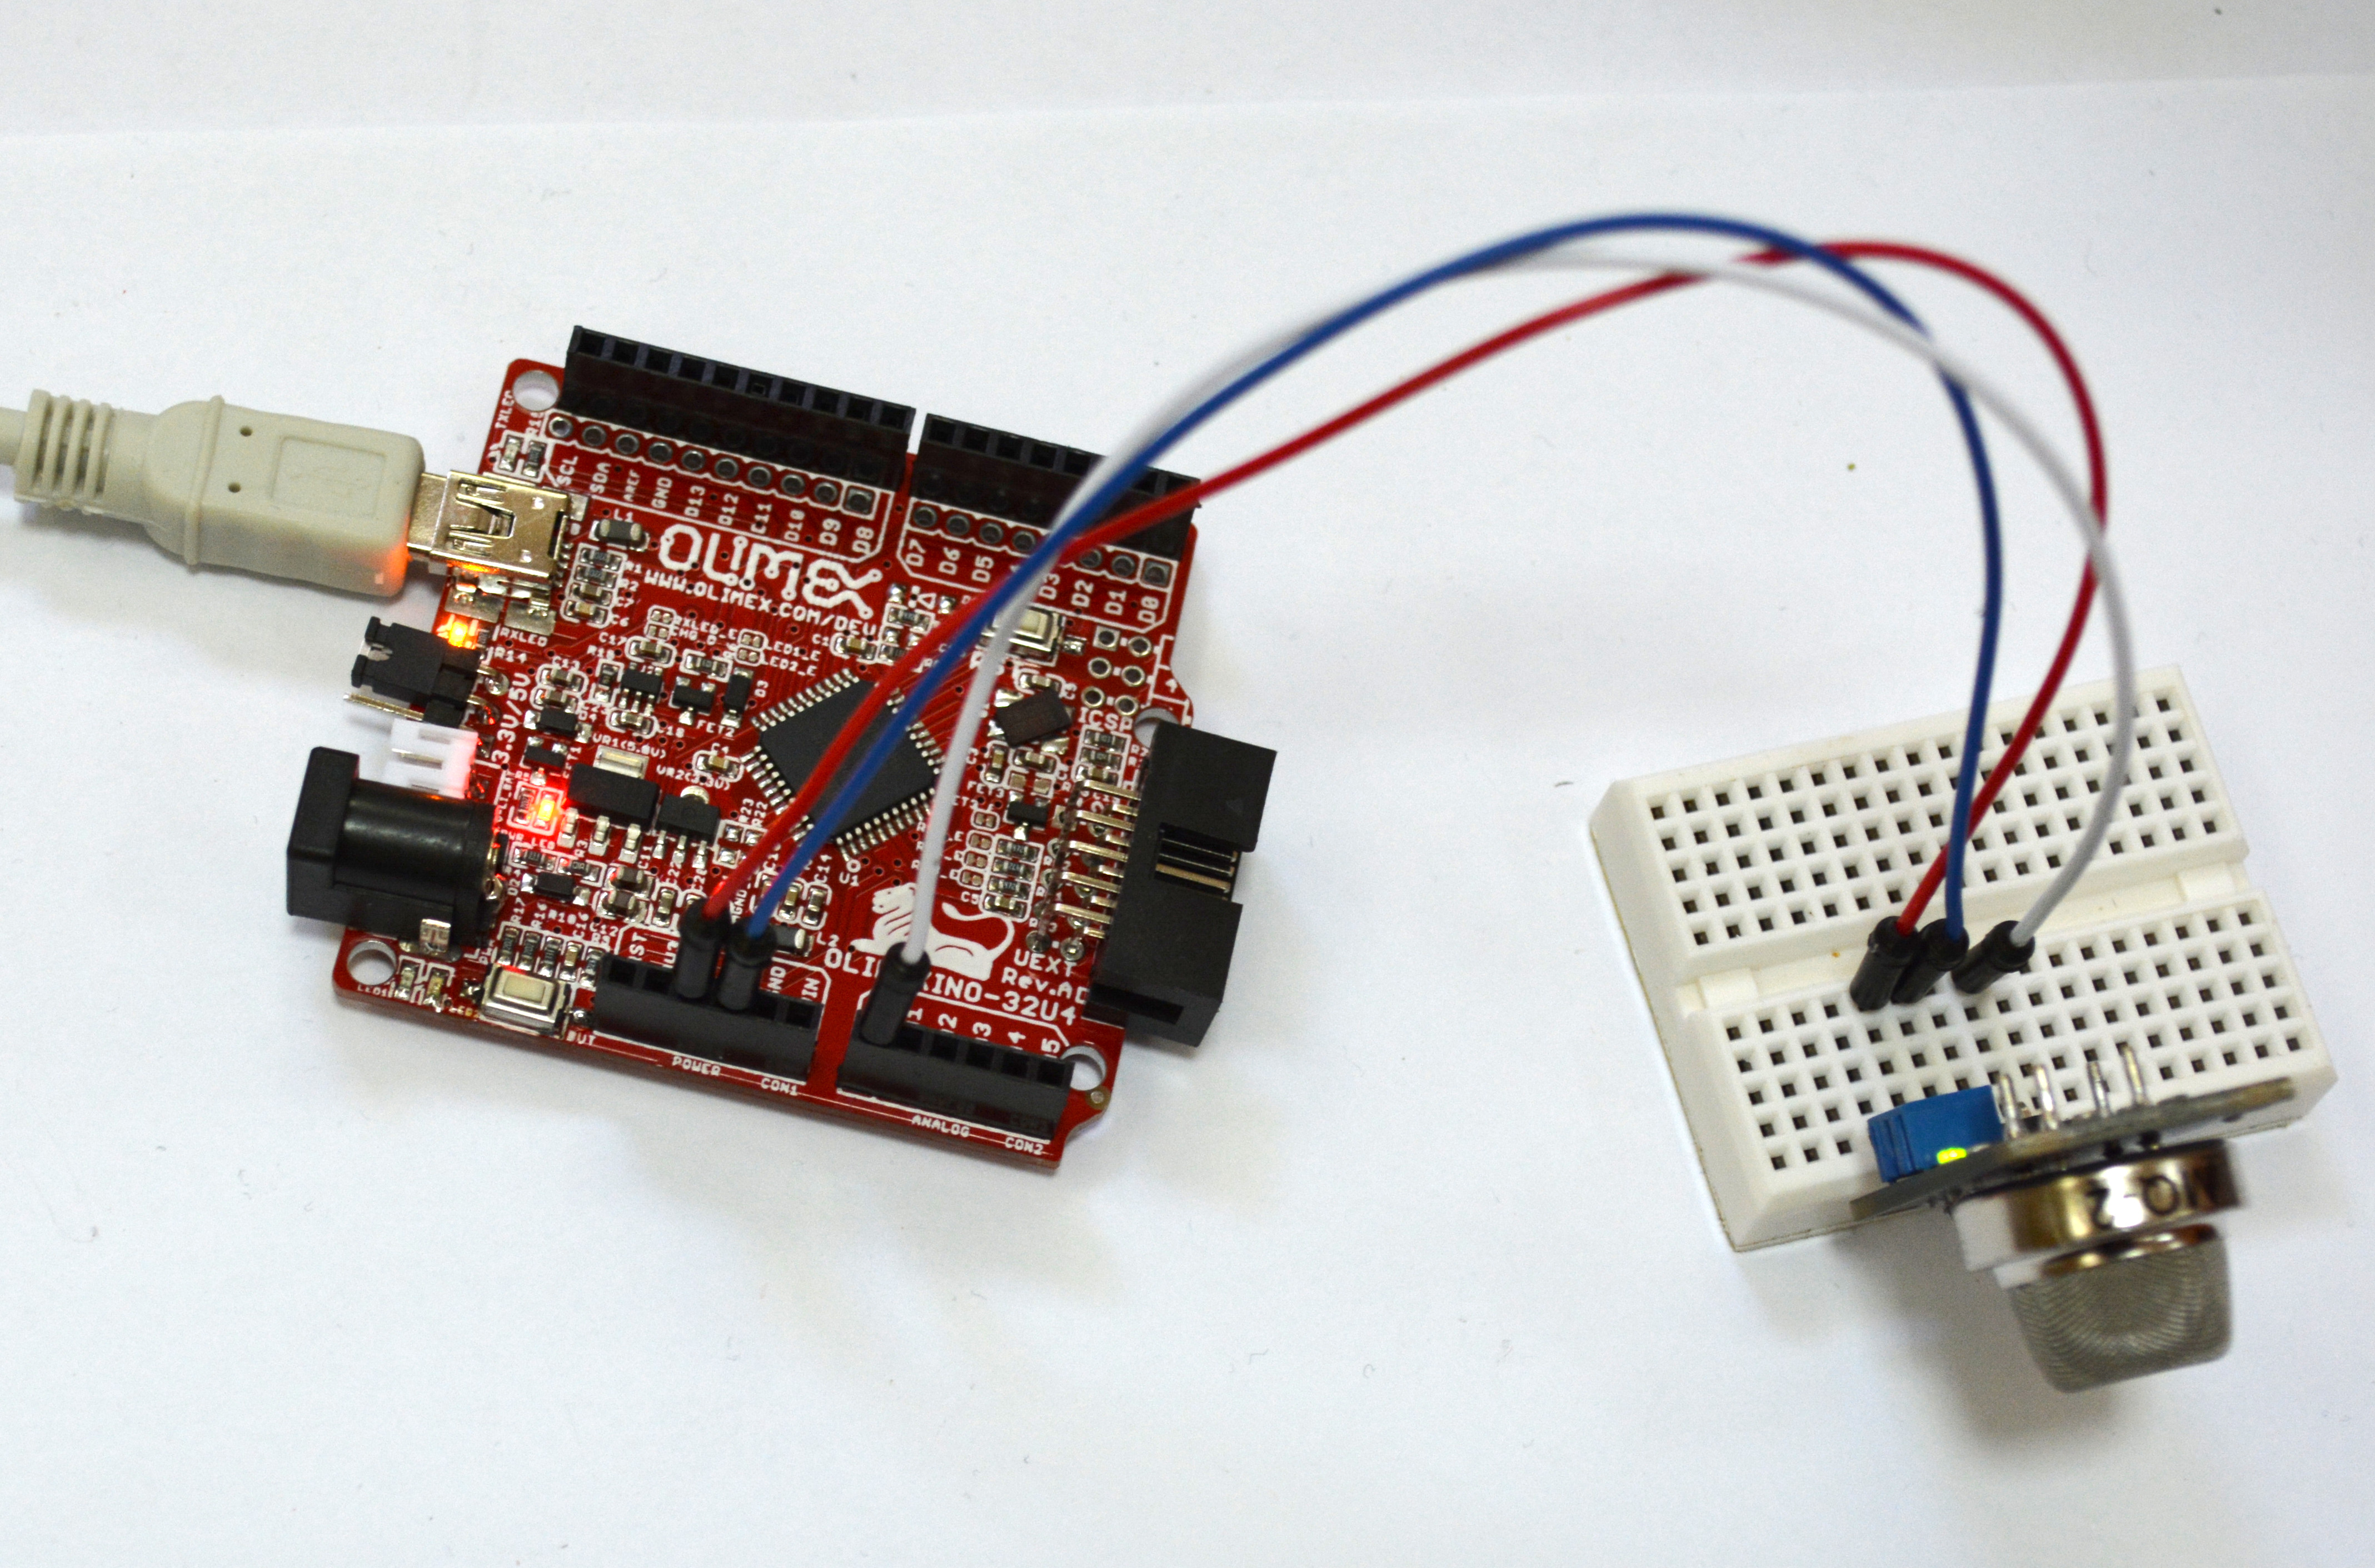 Experimenting with Gas Sensors and Arduino | olimex